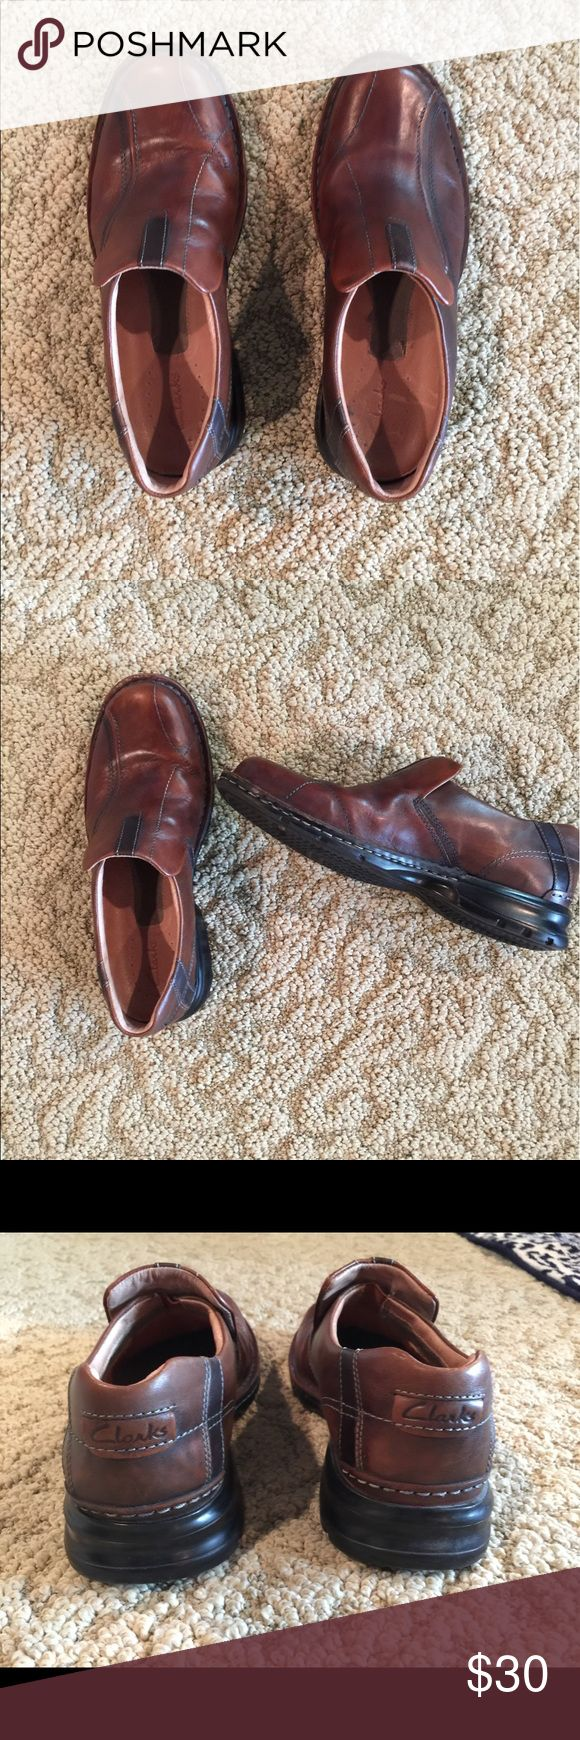 MENS CLARKS SLIPON BROWN LOAFERS SIZE 10 1/2 MENS CLARKS BROWN SLIP ON LOAFERS GENTLY USED SIZE 10 1/2 Clarks Shoes Loafers & Slip-Ons